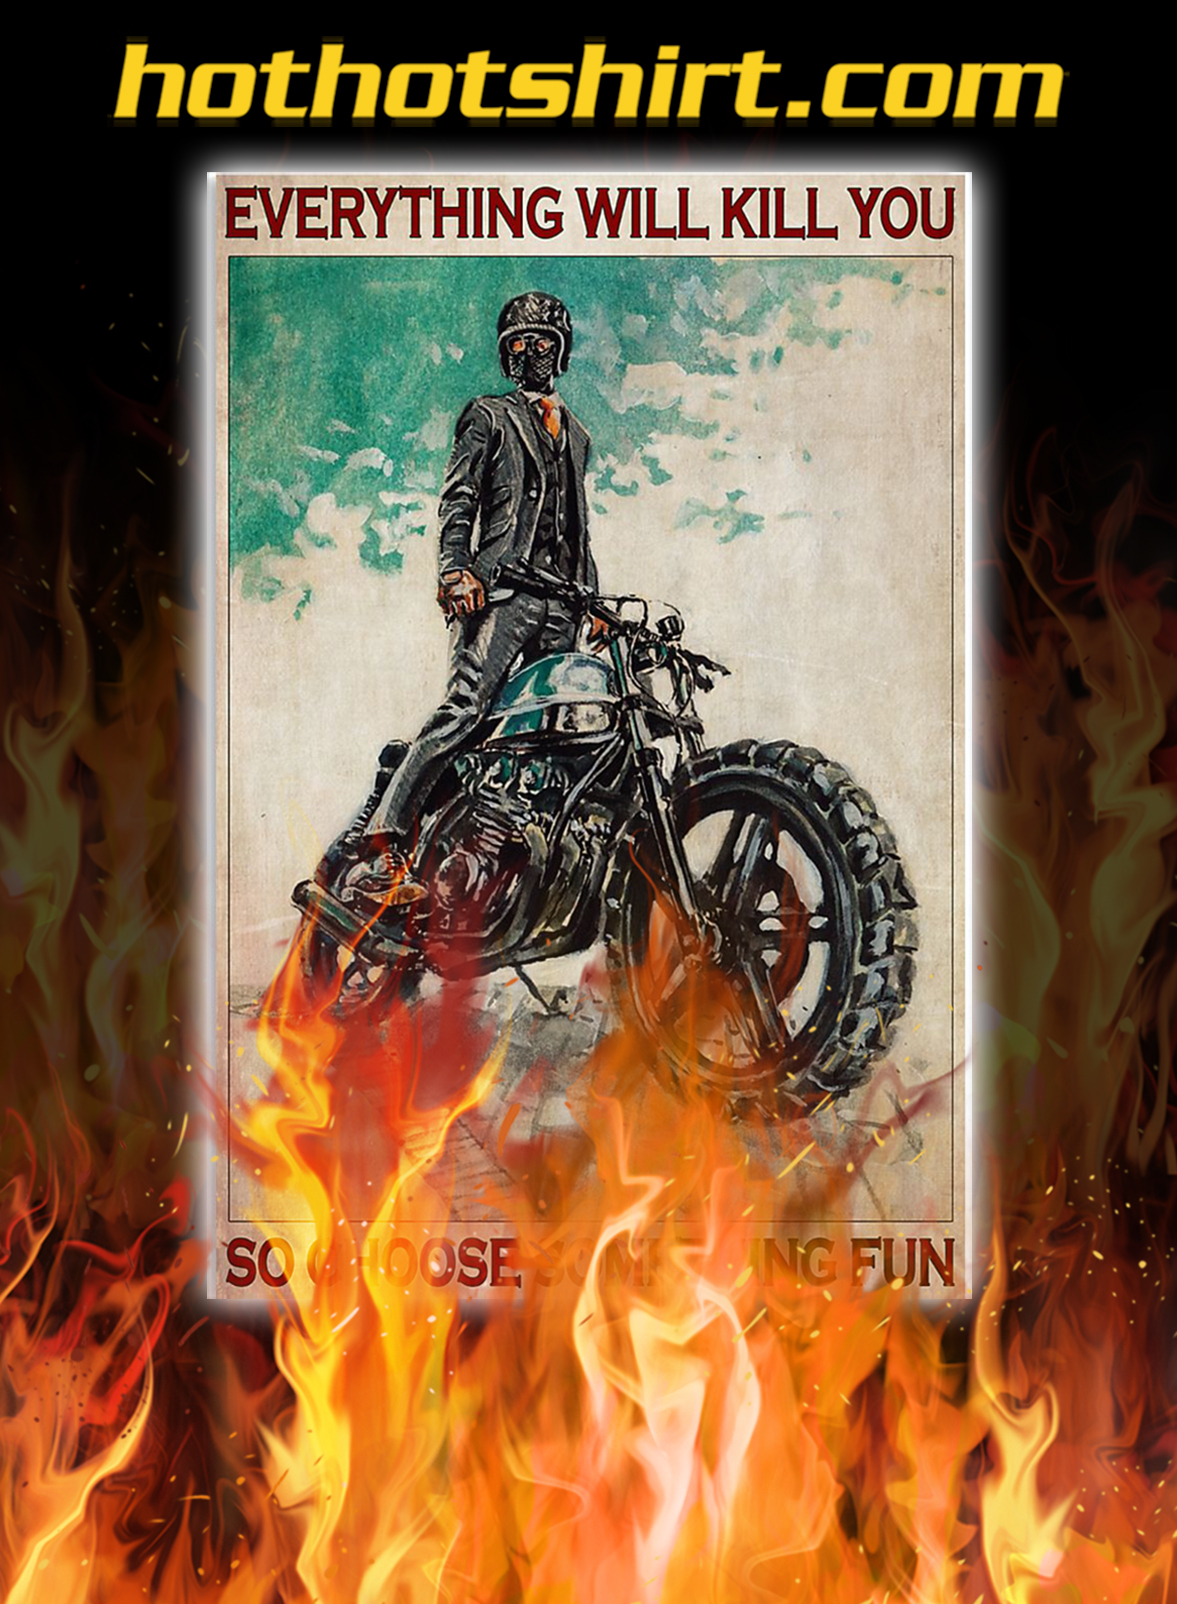 Motorcycle everything will kill you so choose something fun poster - A1